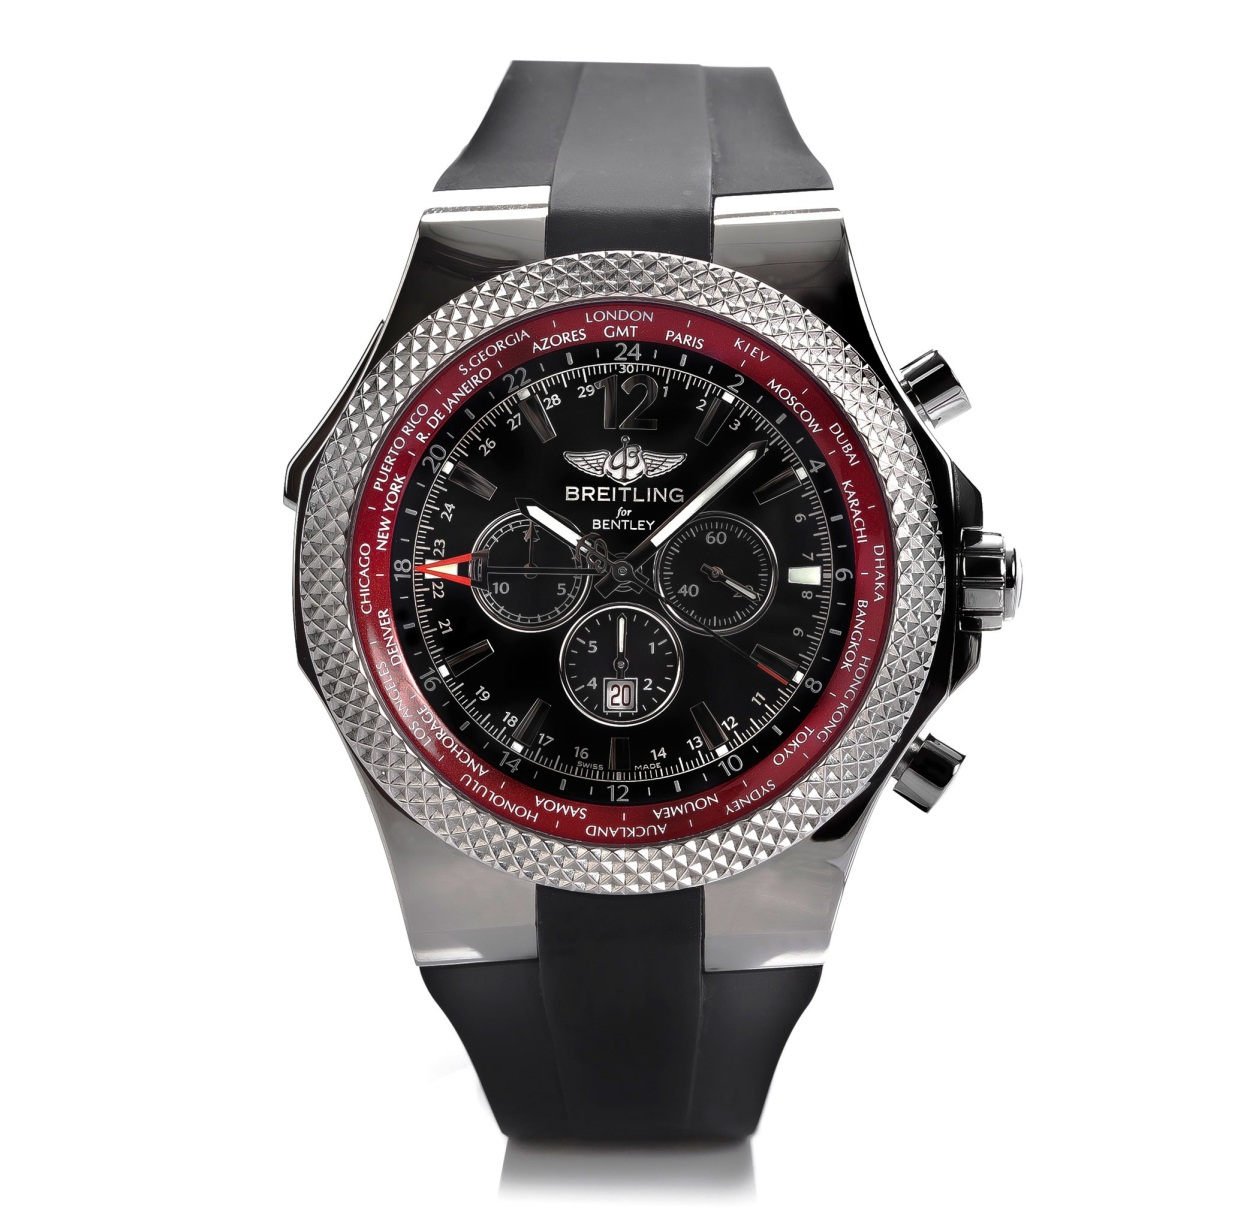 breitling for Bently Feel the Need for Speed with the Breitling for Bentley Limited Edition GMT V8 Watch.